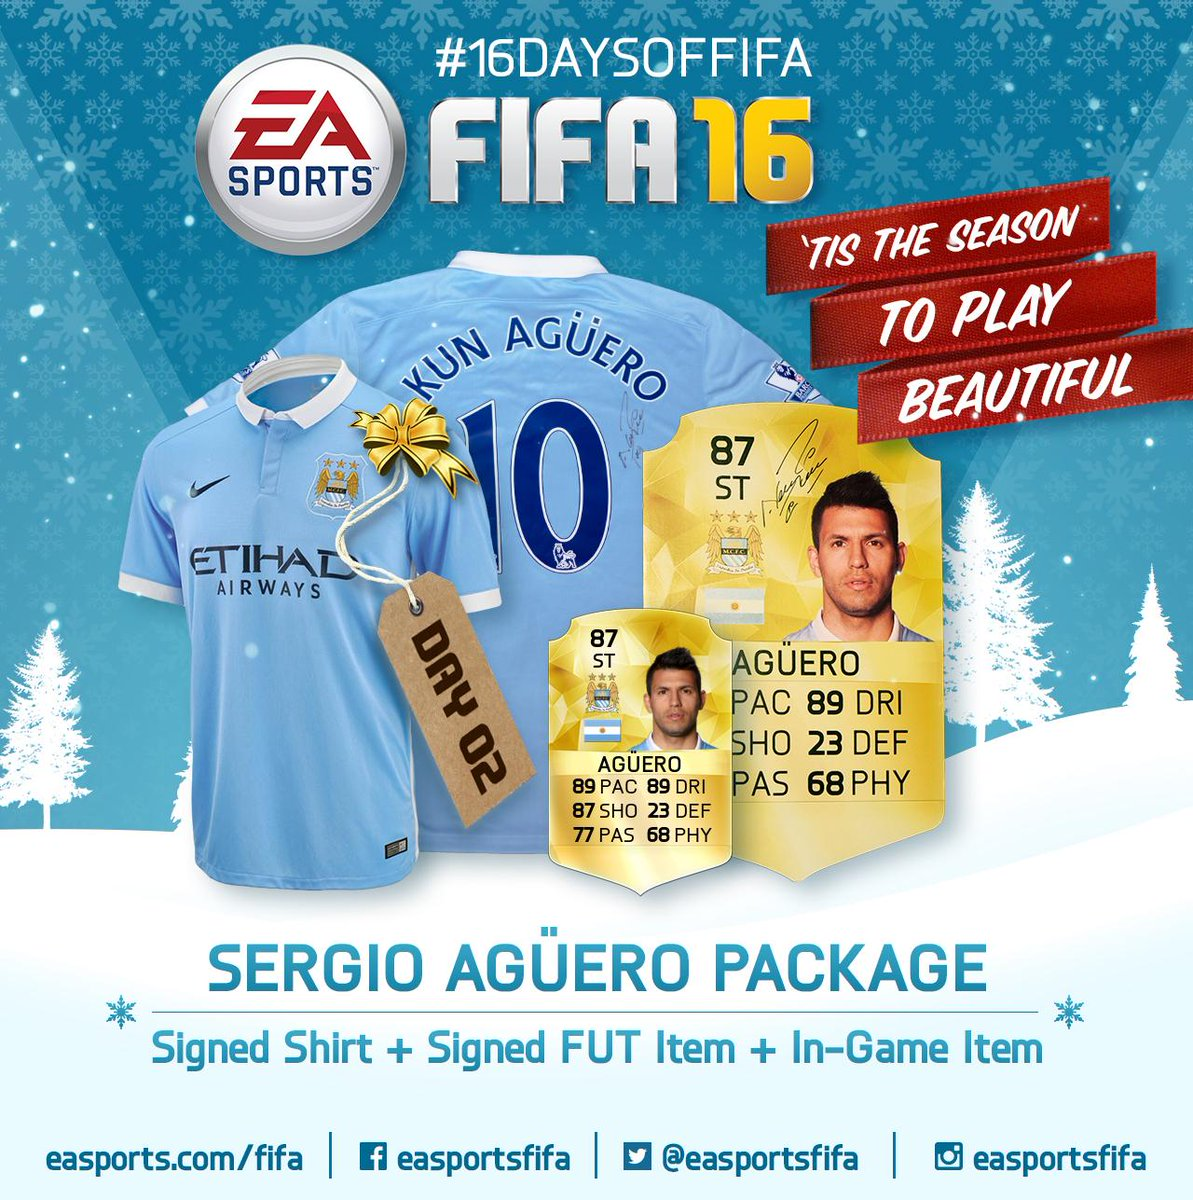 Day 2: Sergio Aguero Package! Follow and RT for a chance to win. #16DaysofFIFA